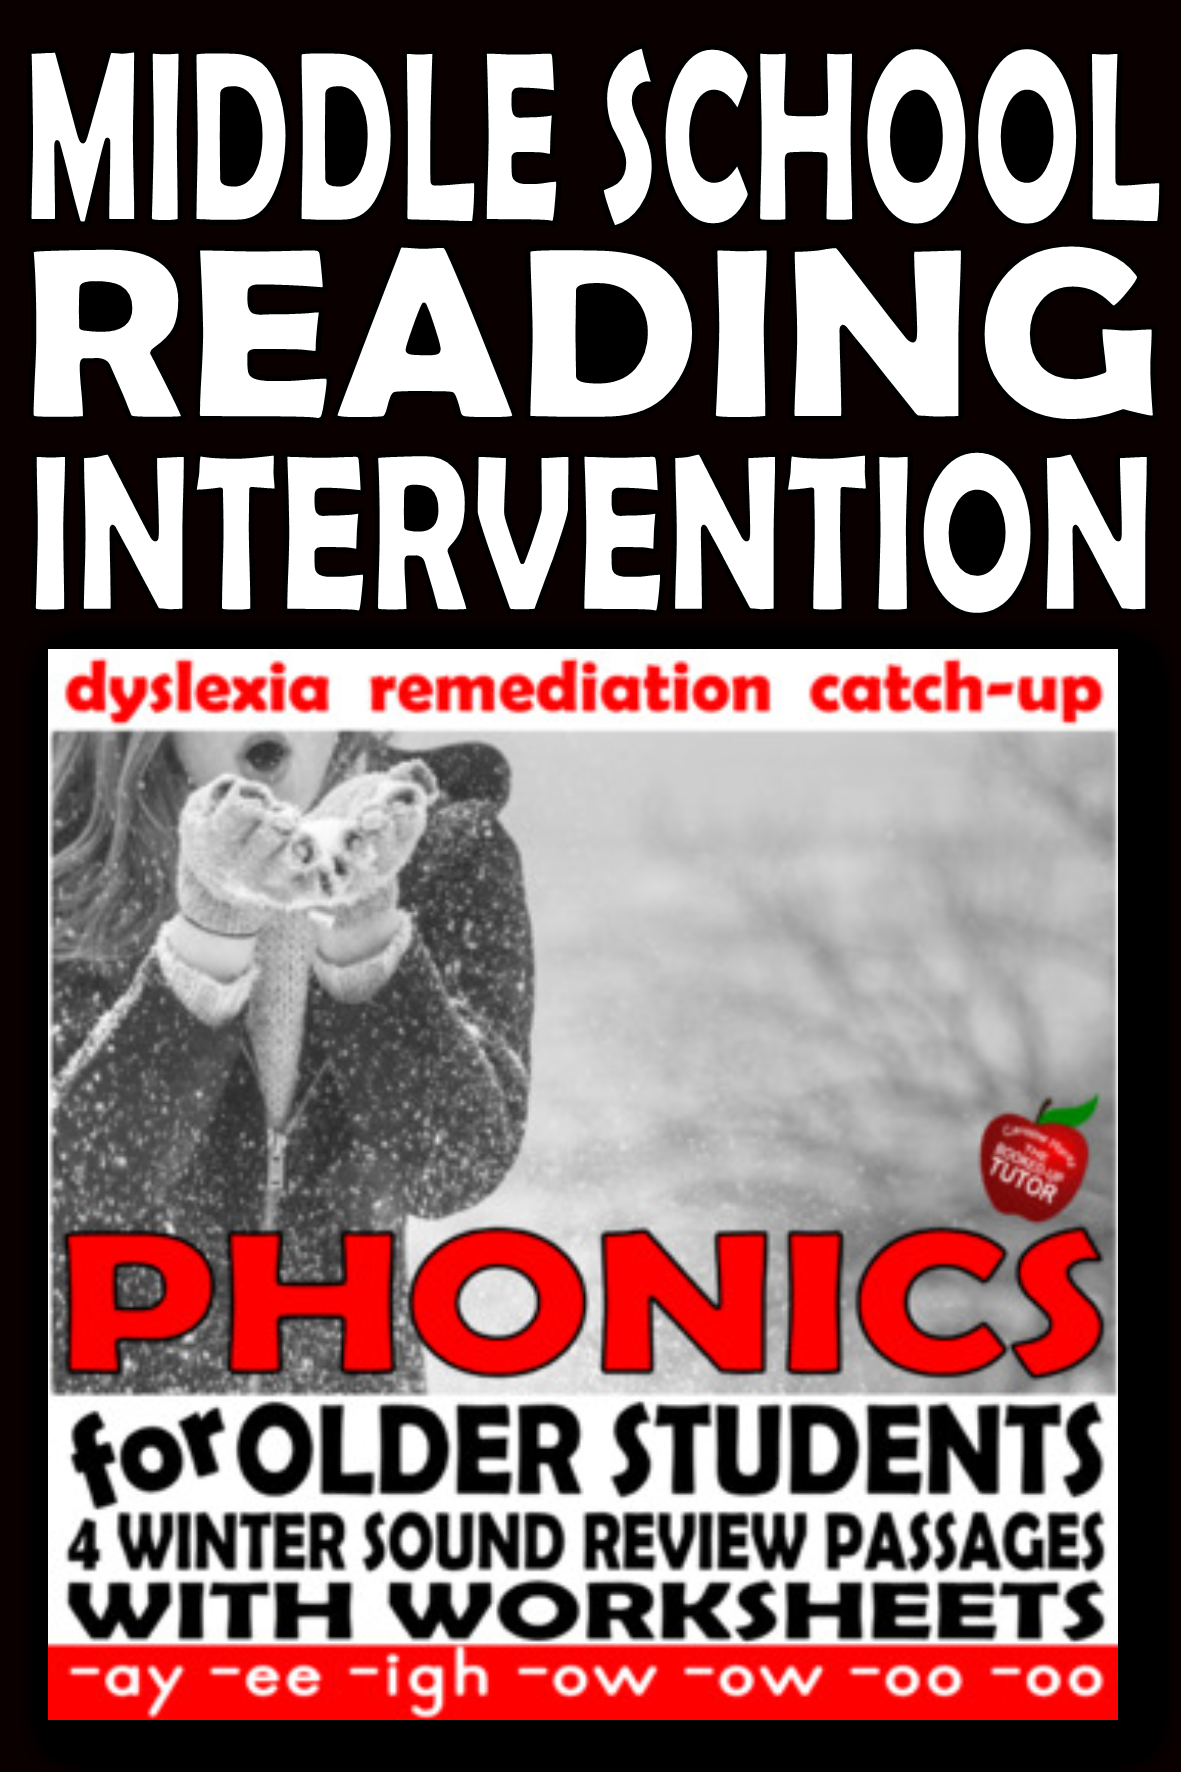 Dyslexia Phonics Older Students Phonics Reading